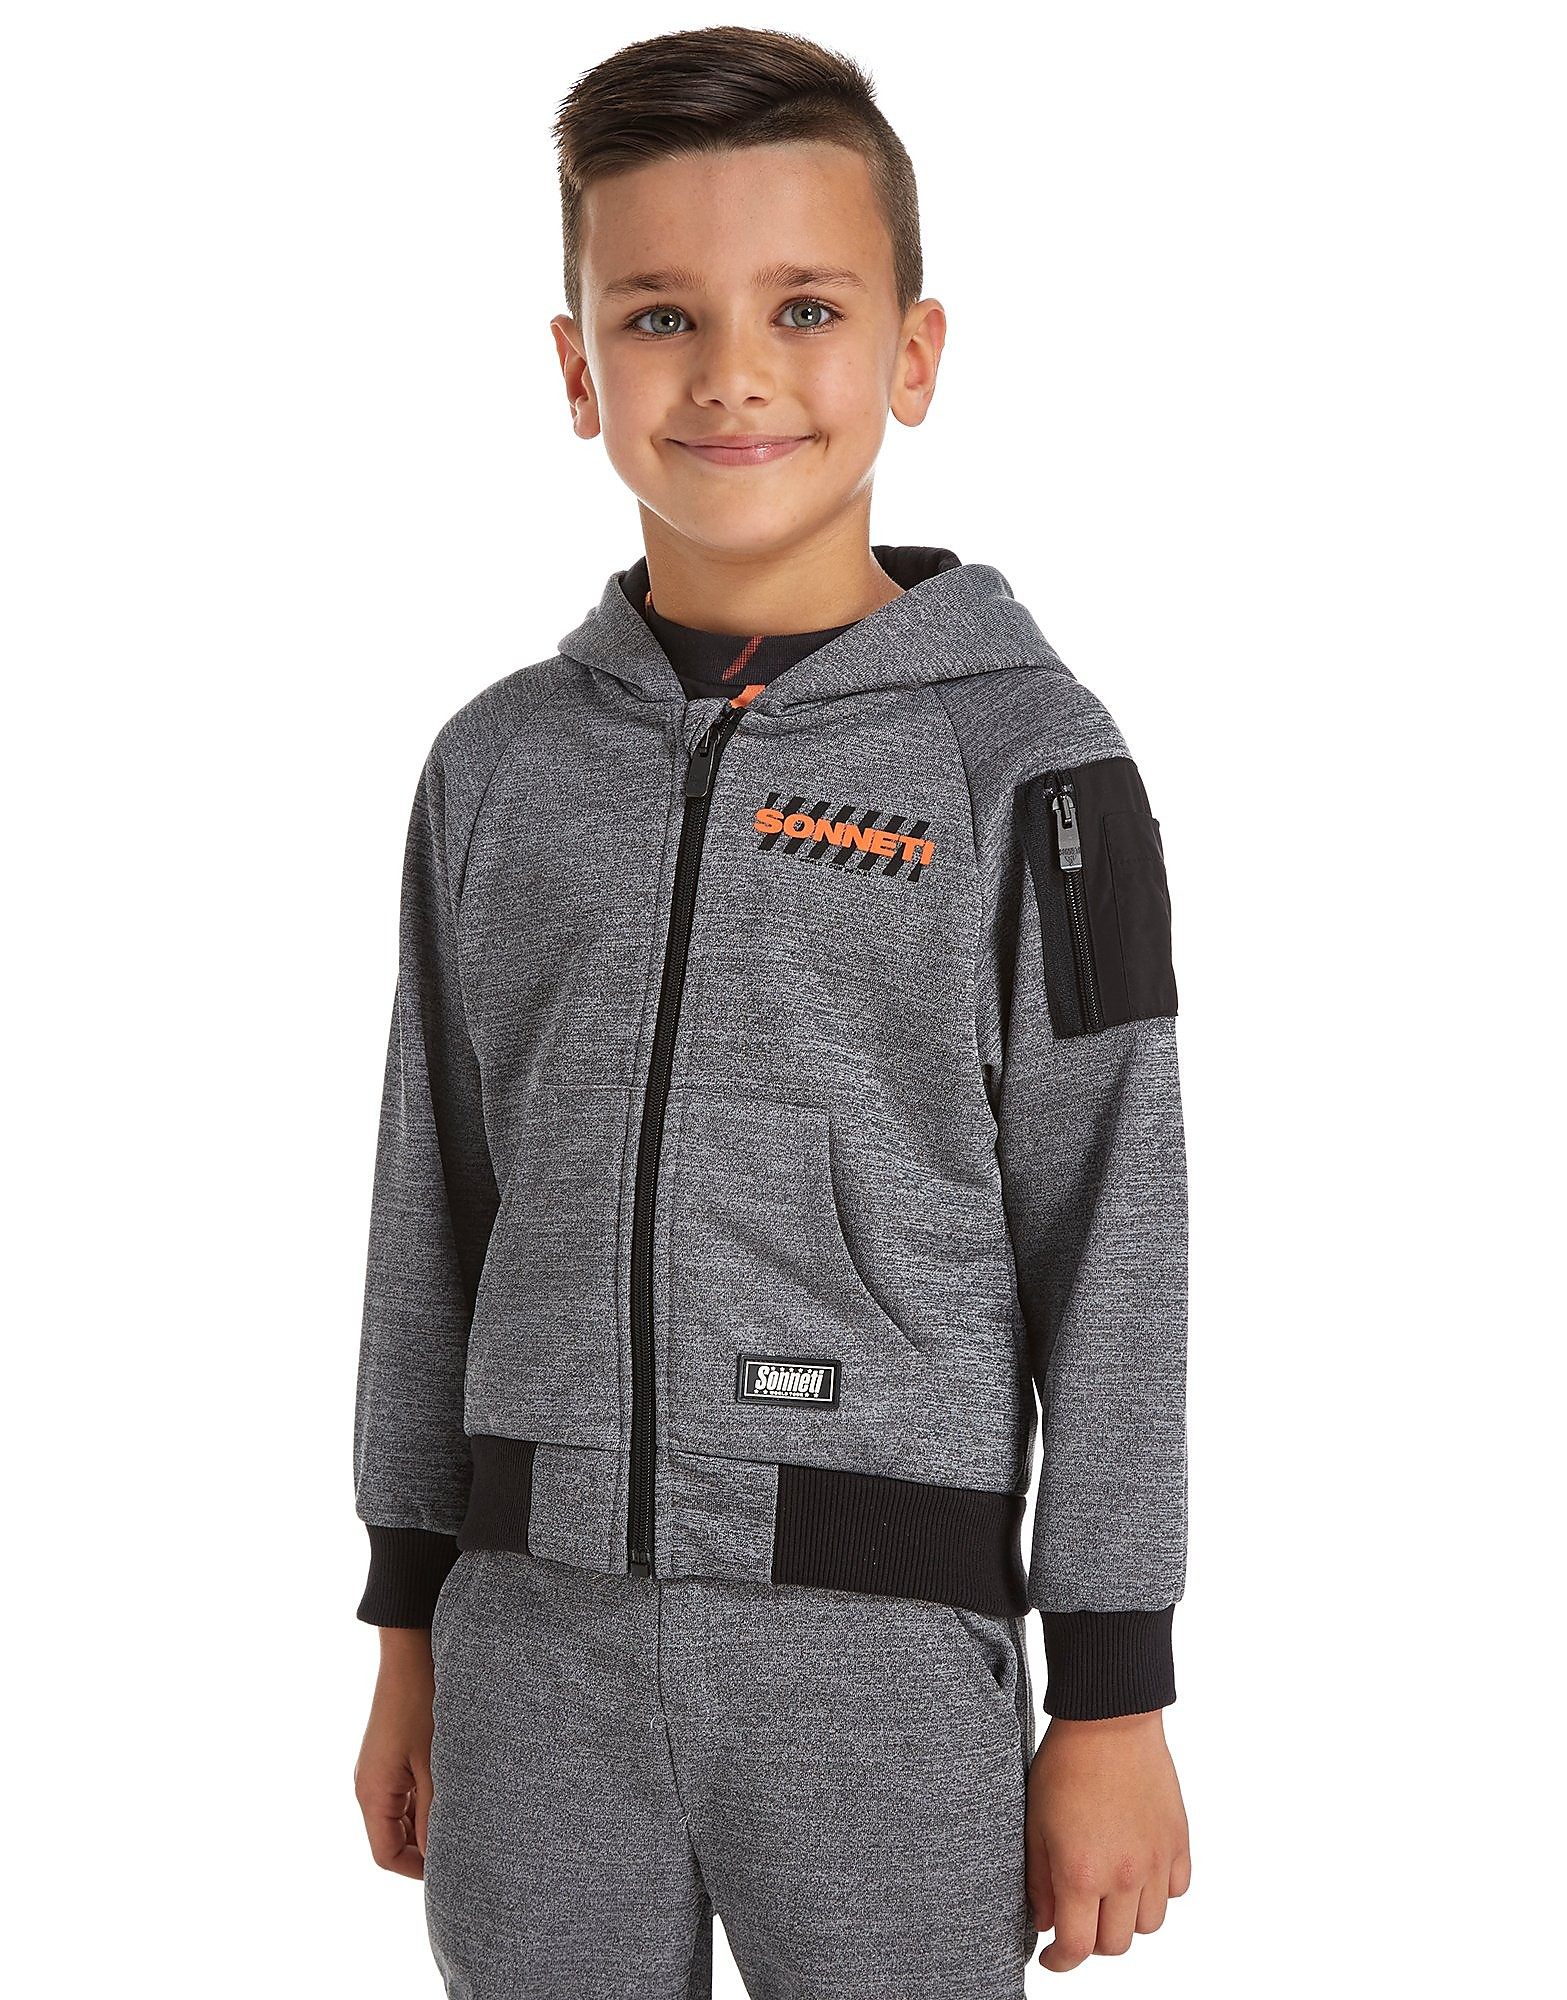 Sonneti Deckard Poly Suit Children